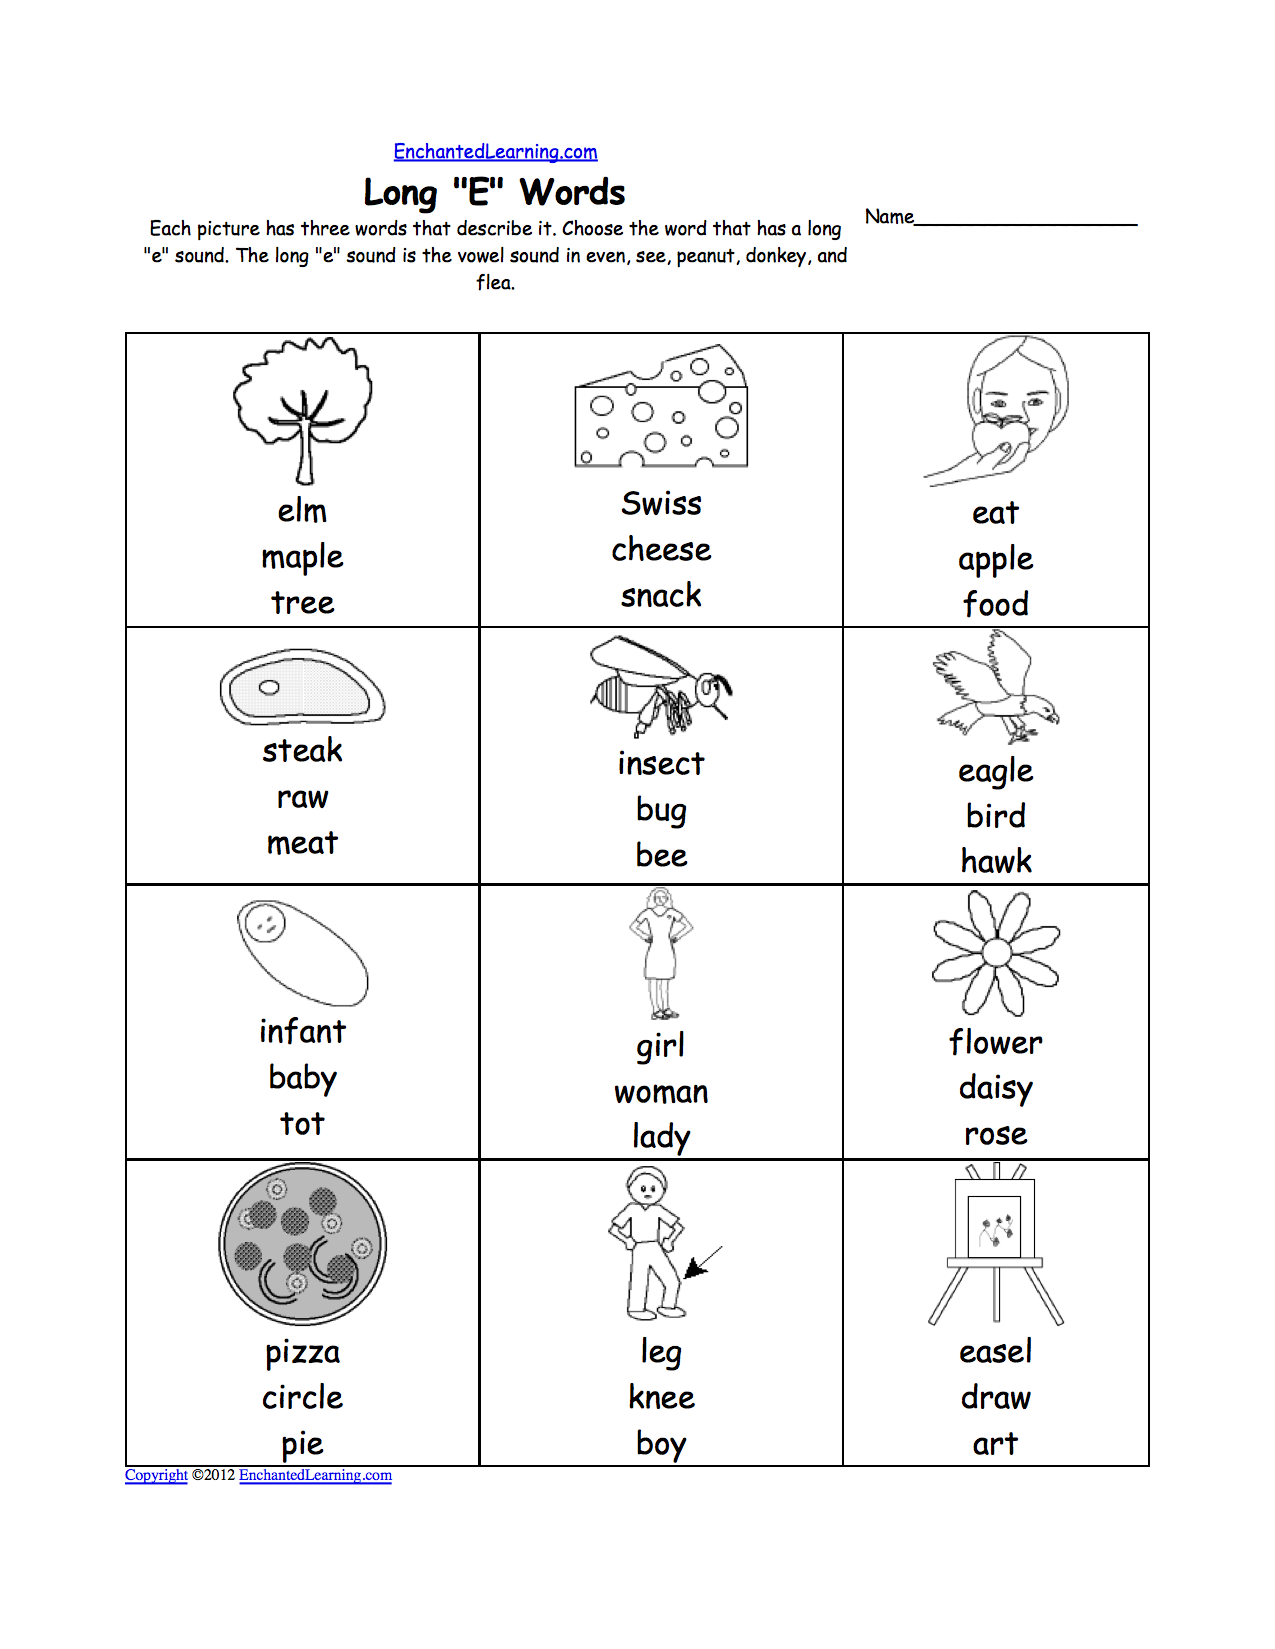 Worksheet Short E Worksheets For First Grade long e worksheets for first grade delwfg com alphabet activities at enchantedlearning grade